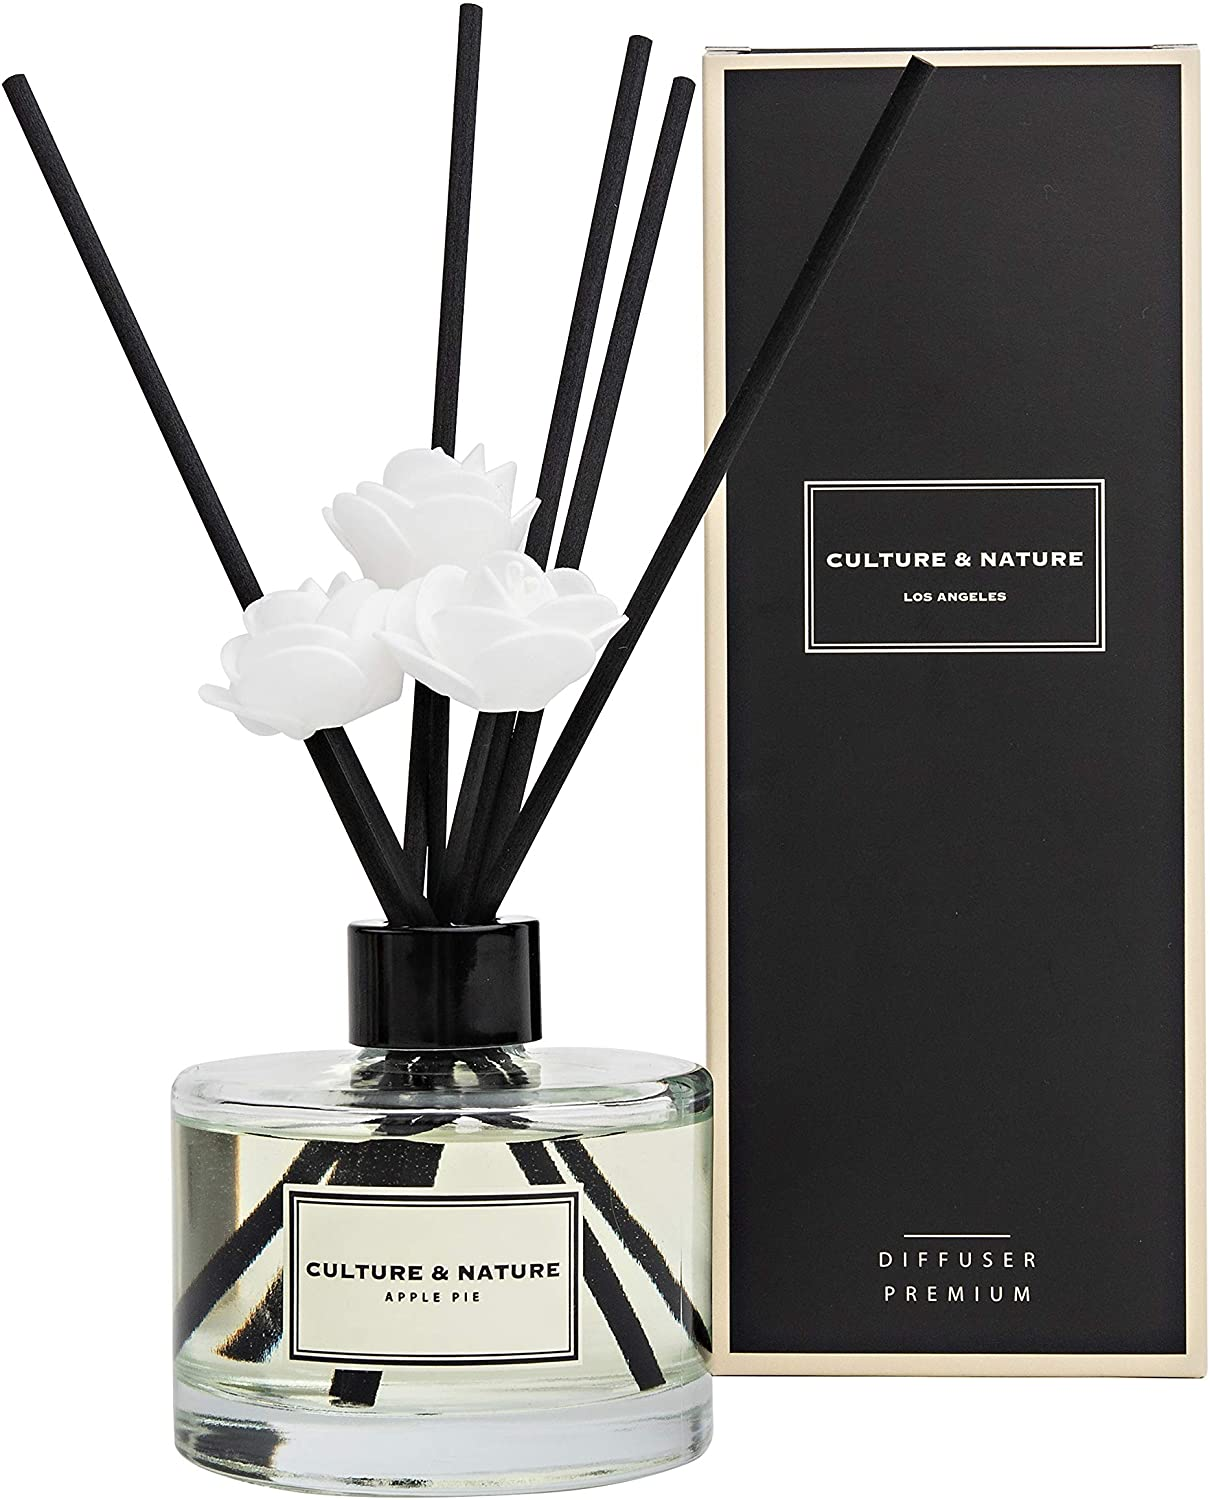 CULTURE & NATURE Reed Diffuser 6.7 oz (200ml) Apple Pie Scented Reed Diffuser Set